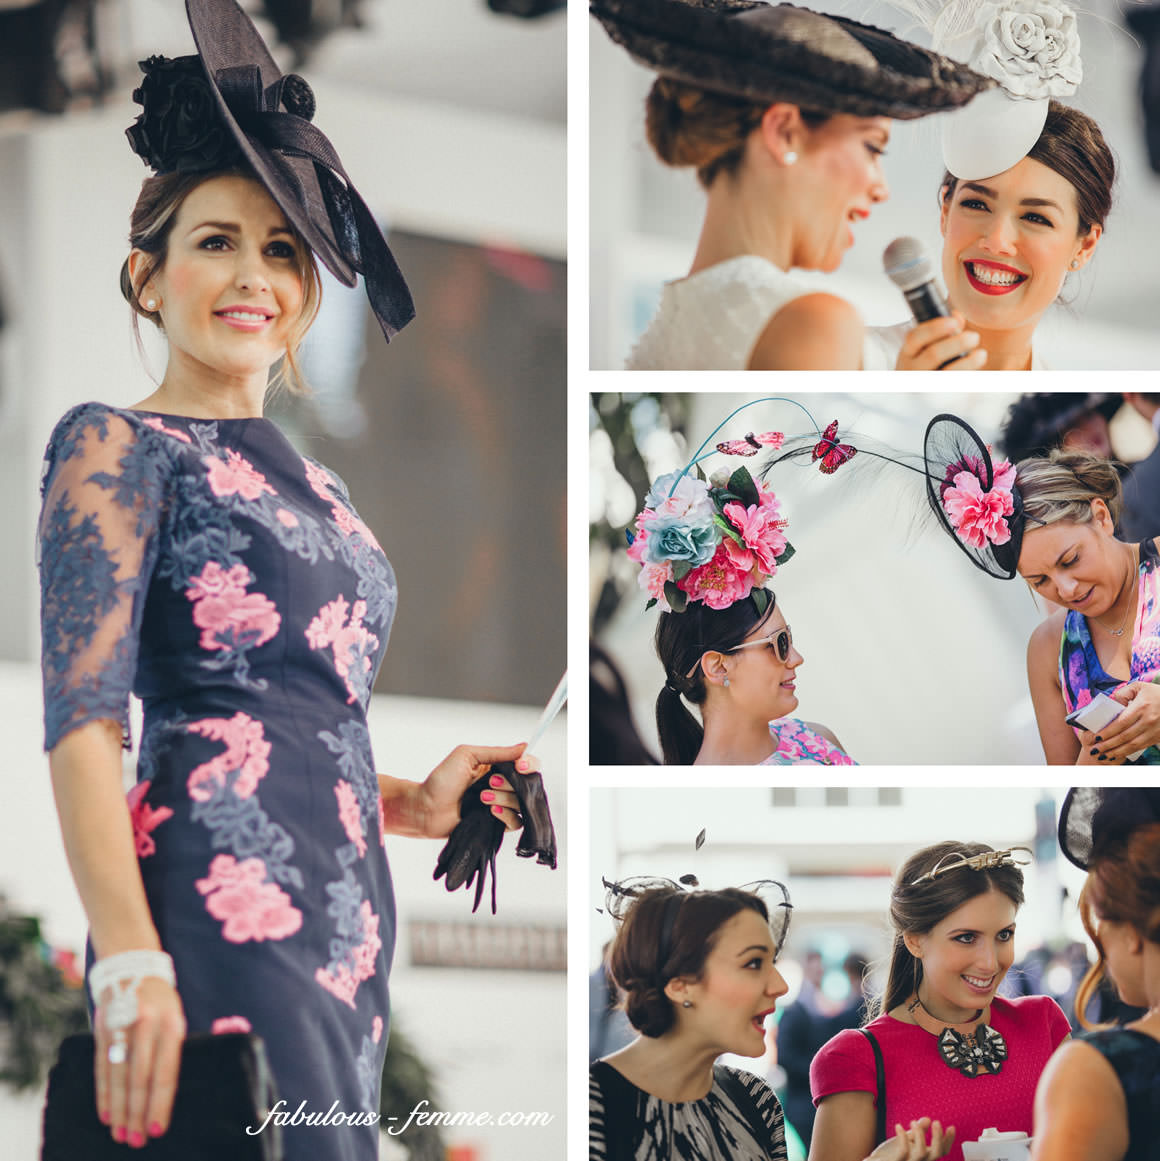 fashions on the field competition at the Cup in Melbourne